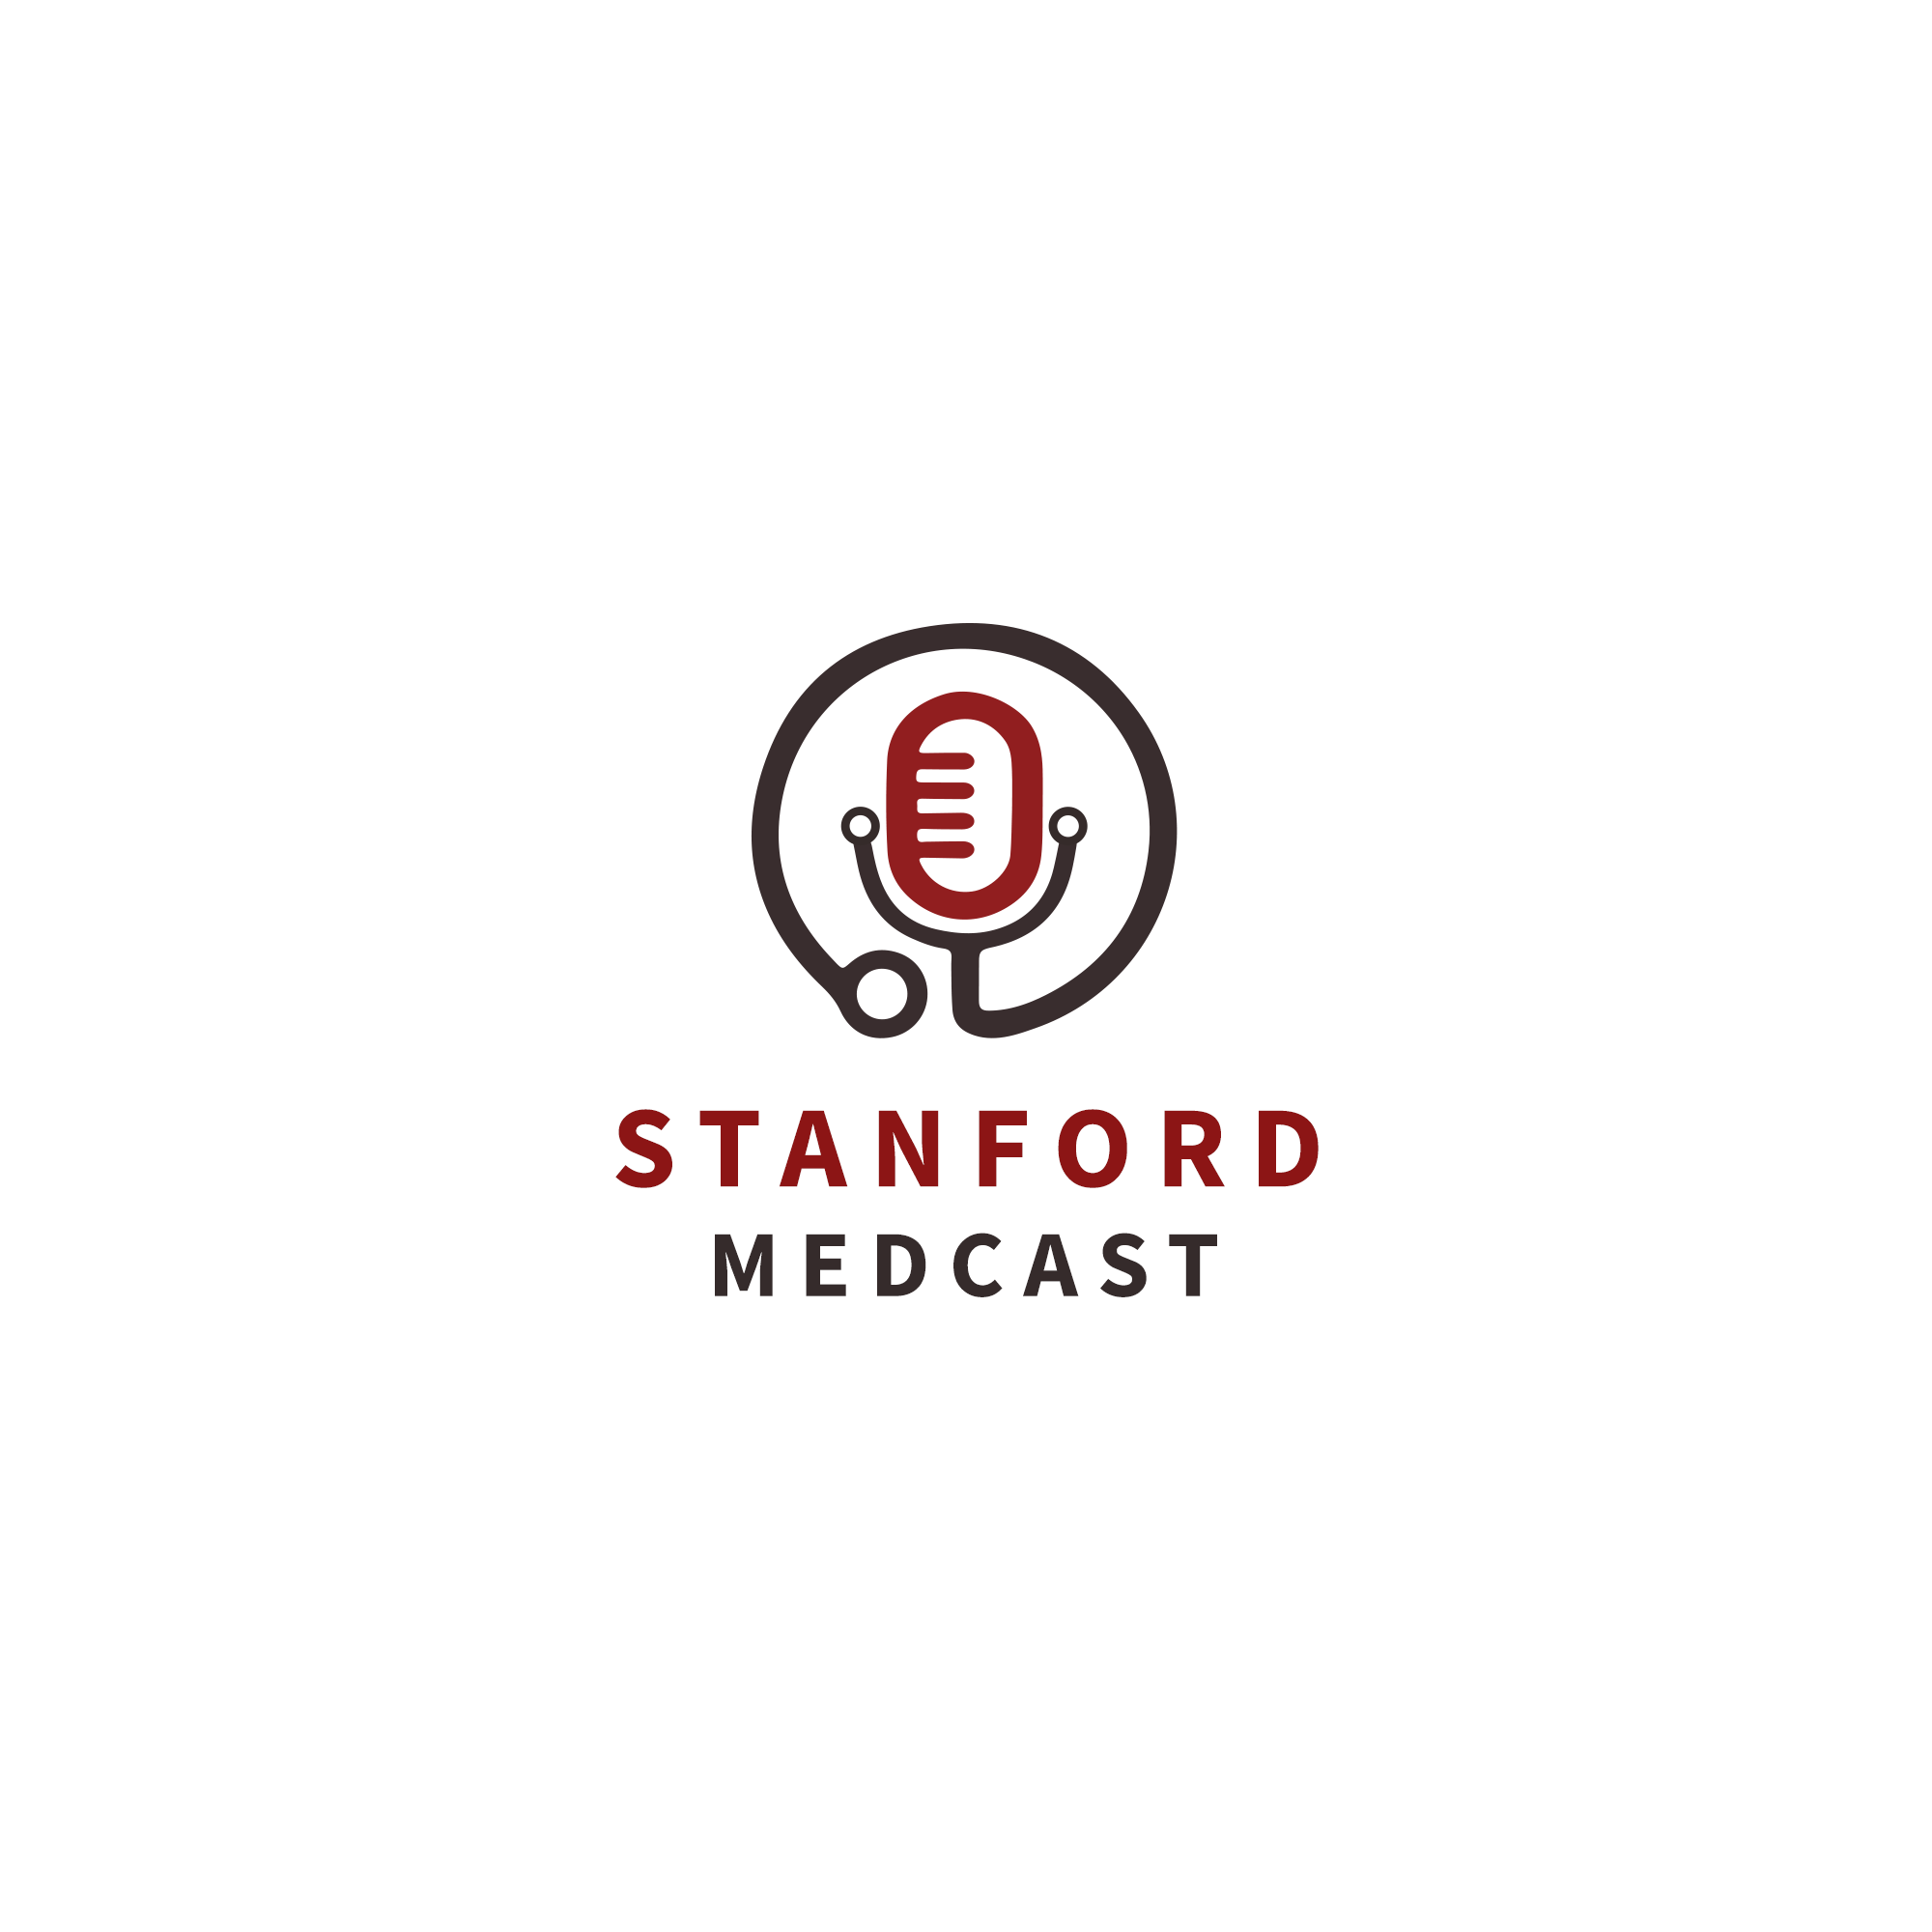 Stanford Medcast Episode 15: COVID-19 Mini-series - Promoting COVID-19 Vaccination Banner